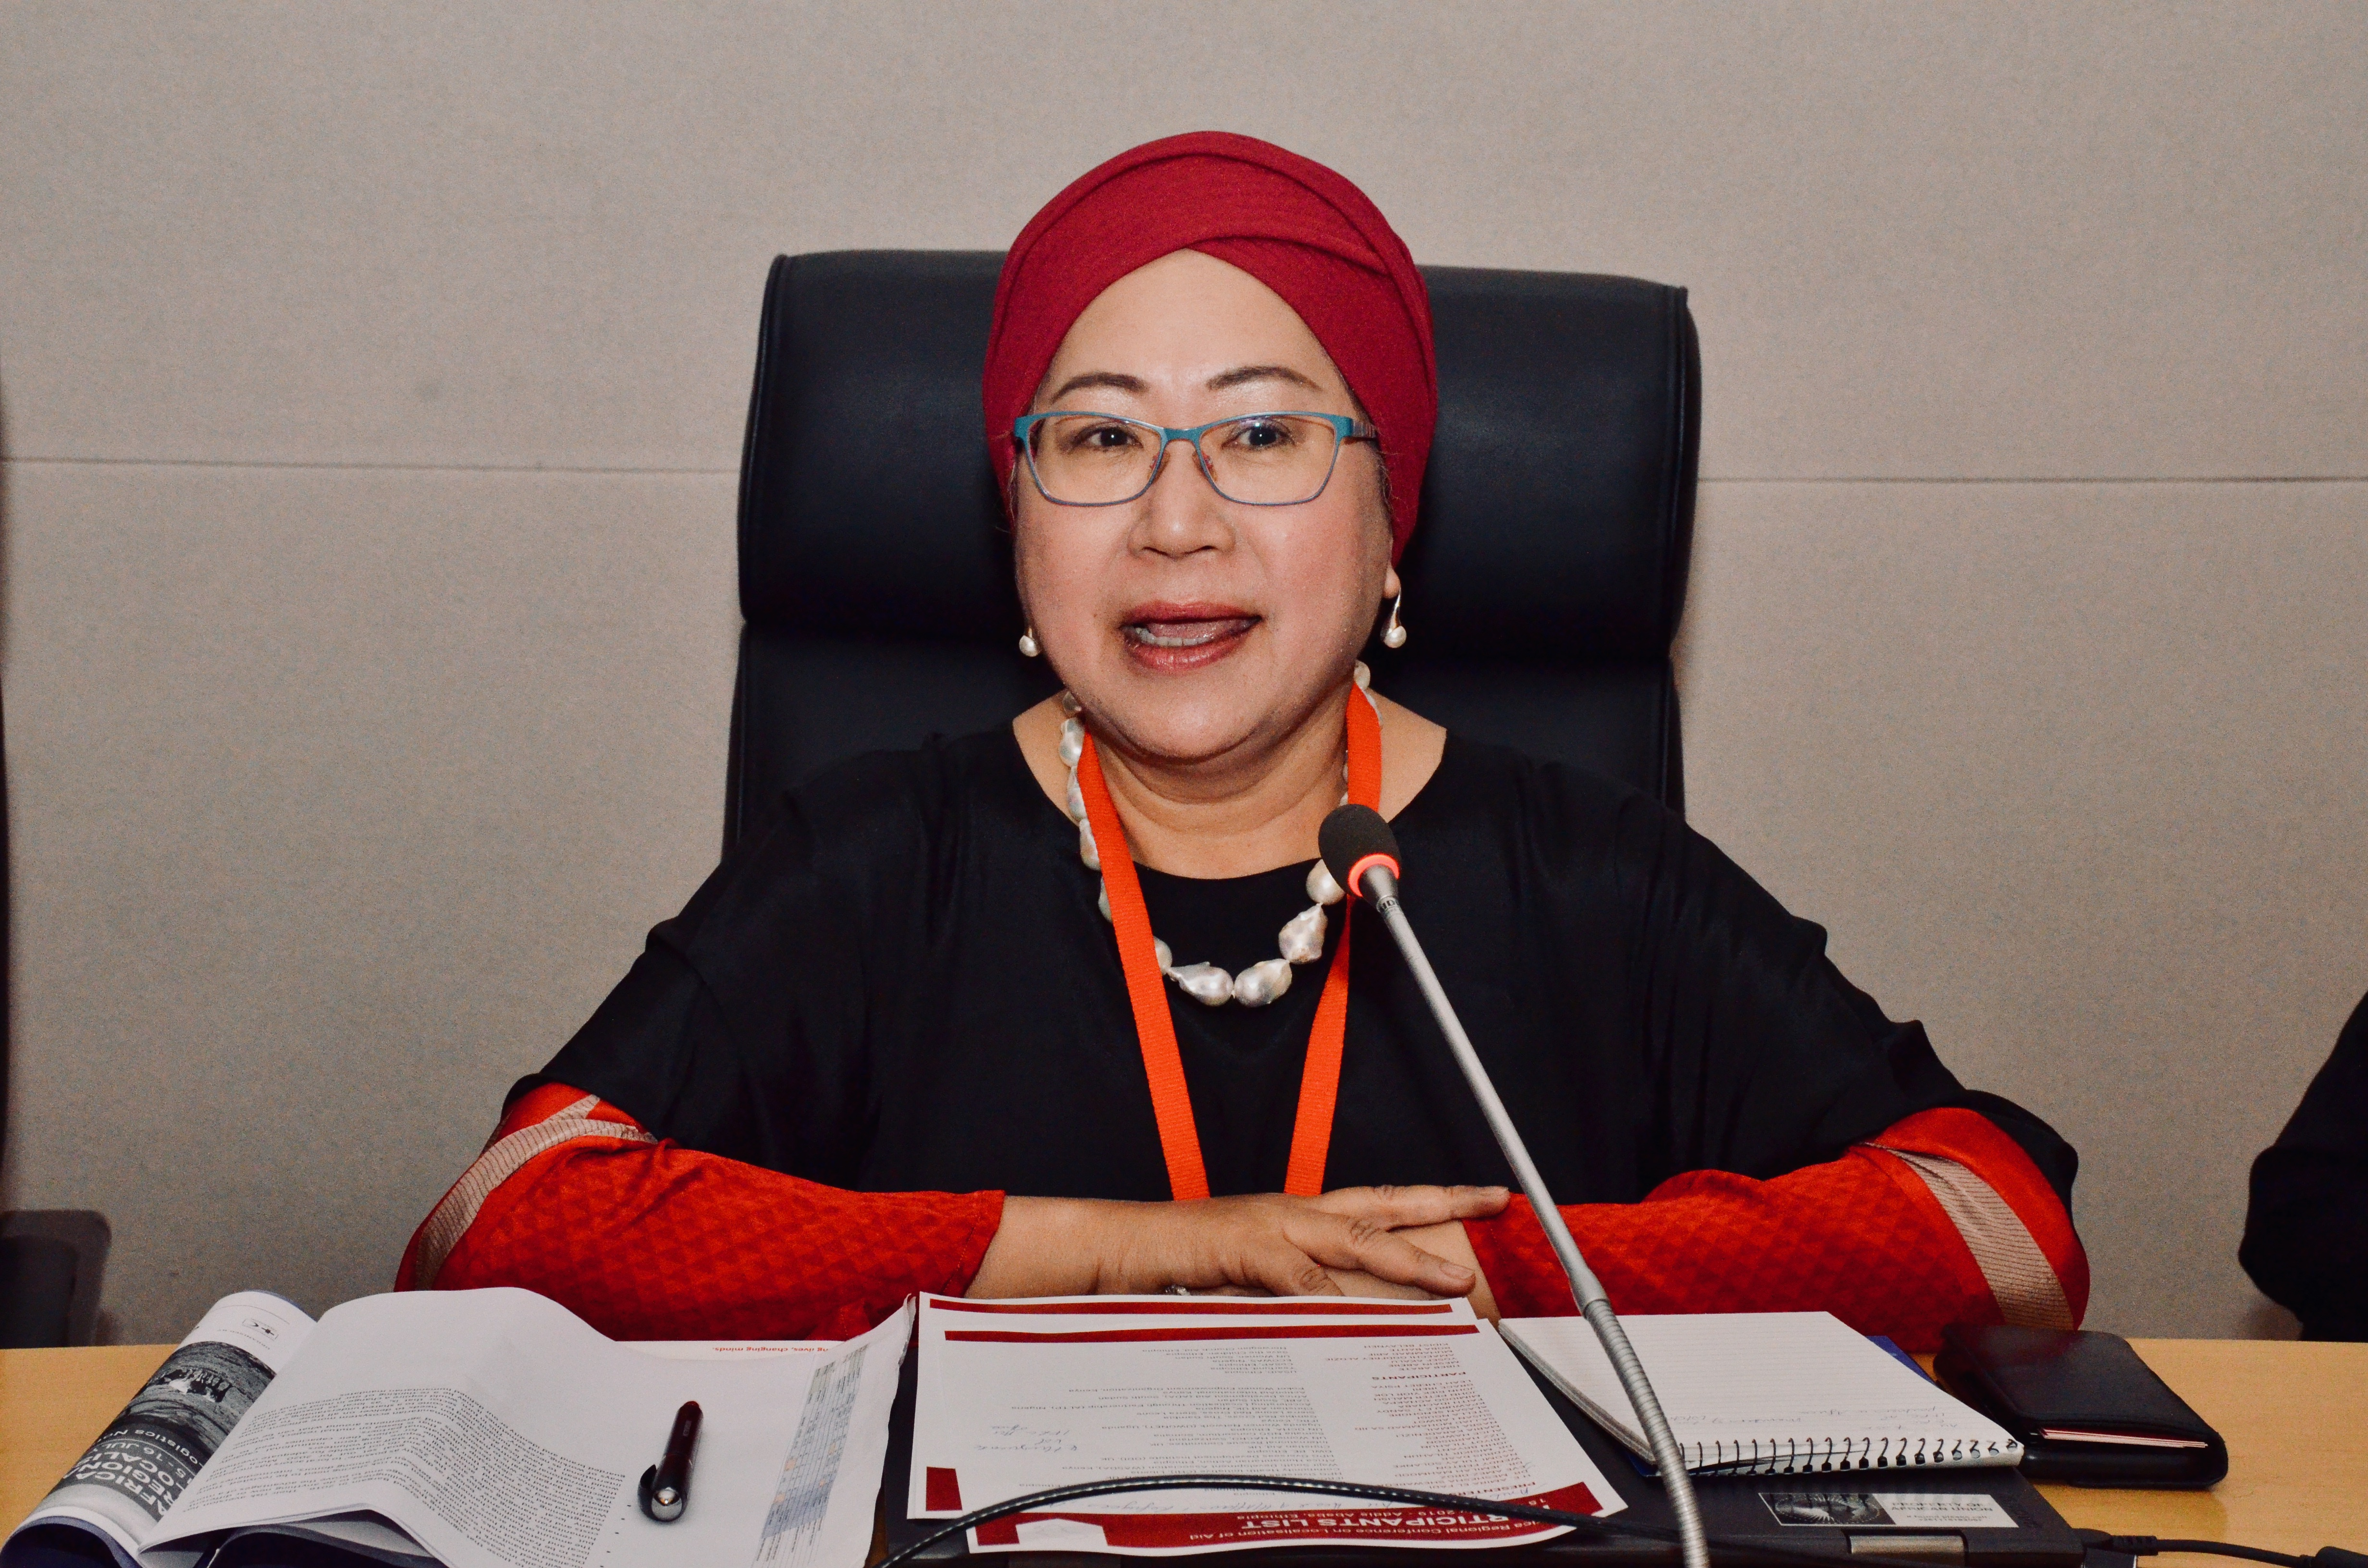 Africa Regional Conference on Localisation Day 1 Opening Session Plenary - Jemilah Mahmood